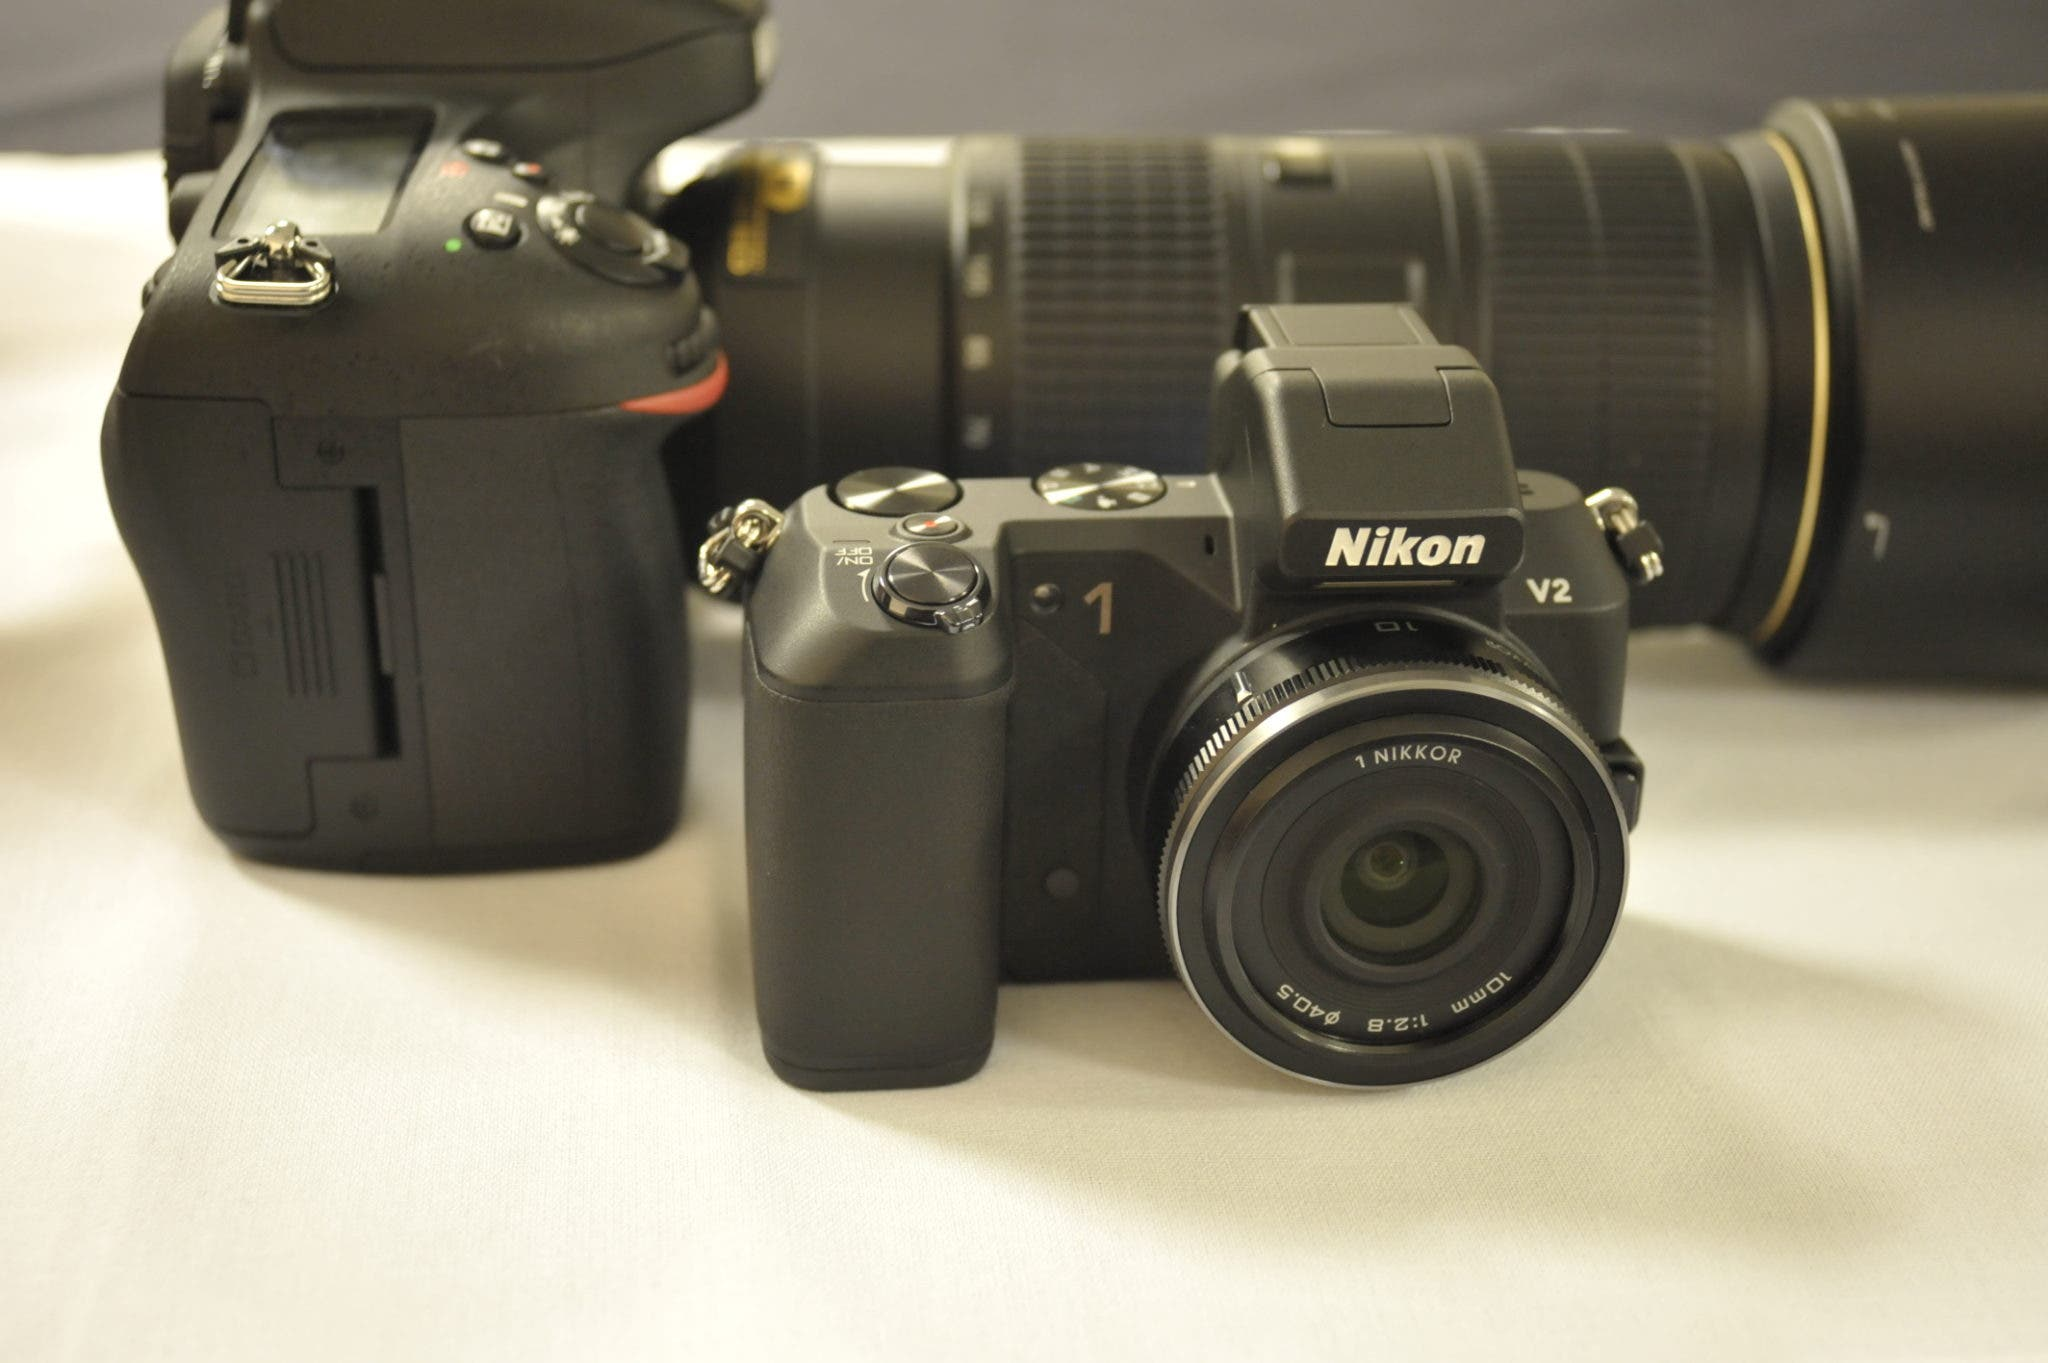 First Impressions: Nikon 1 V2 (and a Quick Glimpse of the Nikon 70-200mm f4 G ED VR)